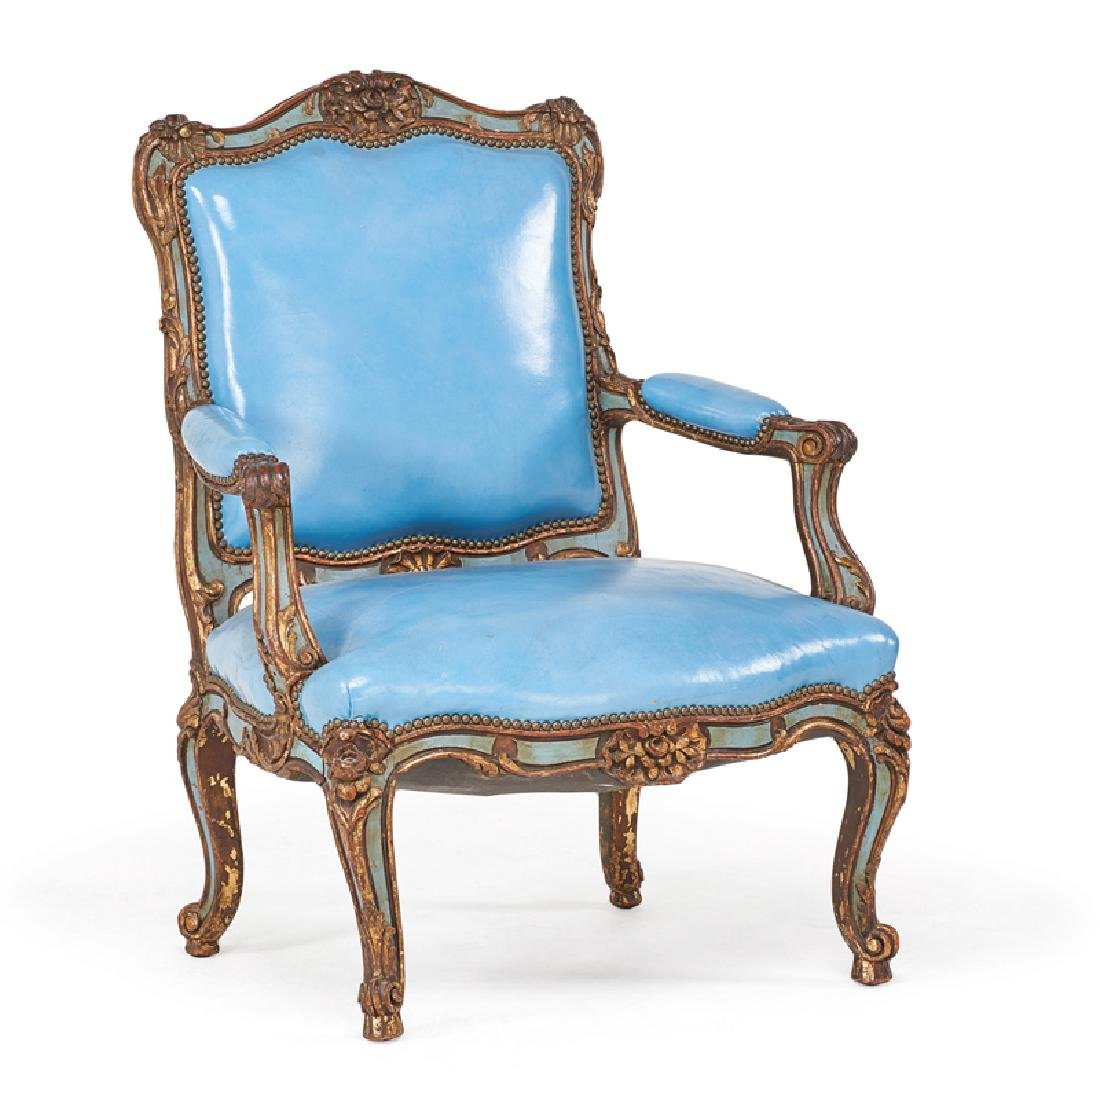 LOUIS XV STYLE PAINTED AND PARCEL GILT ARMCHAIR